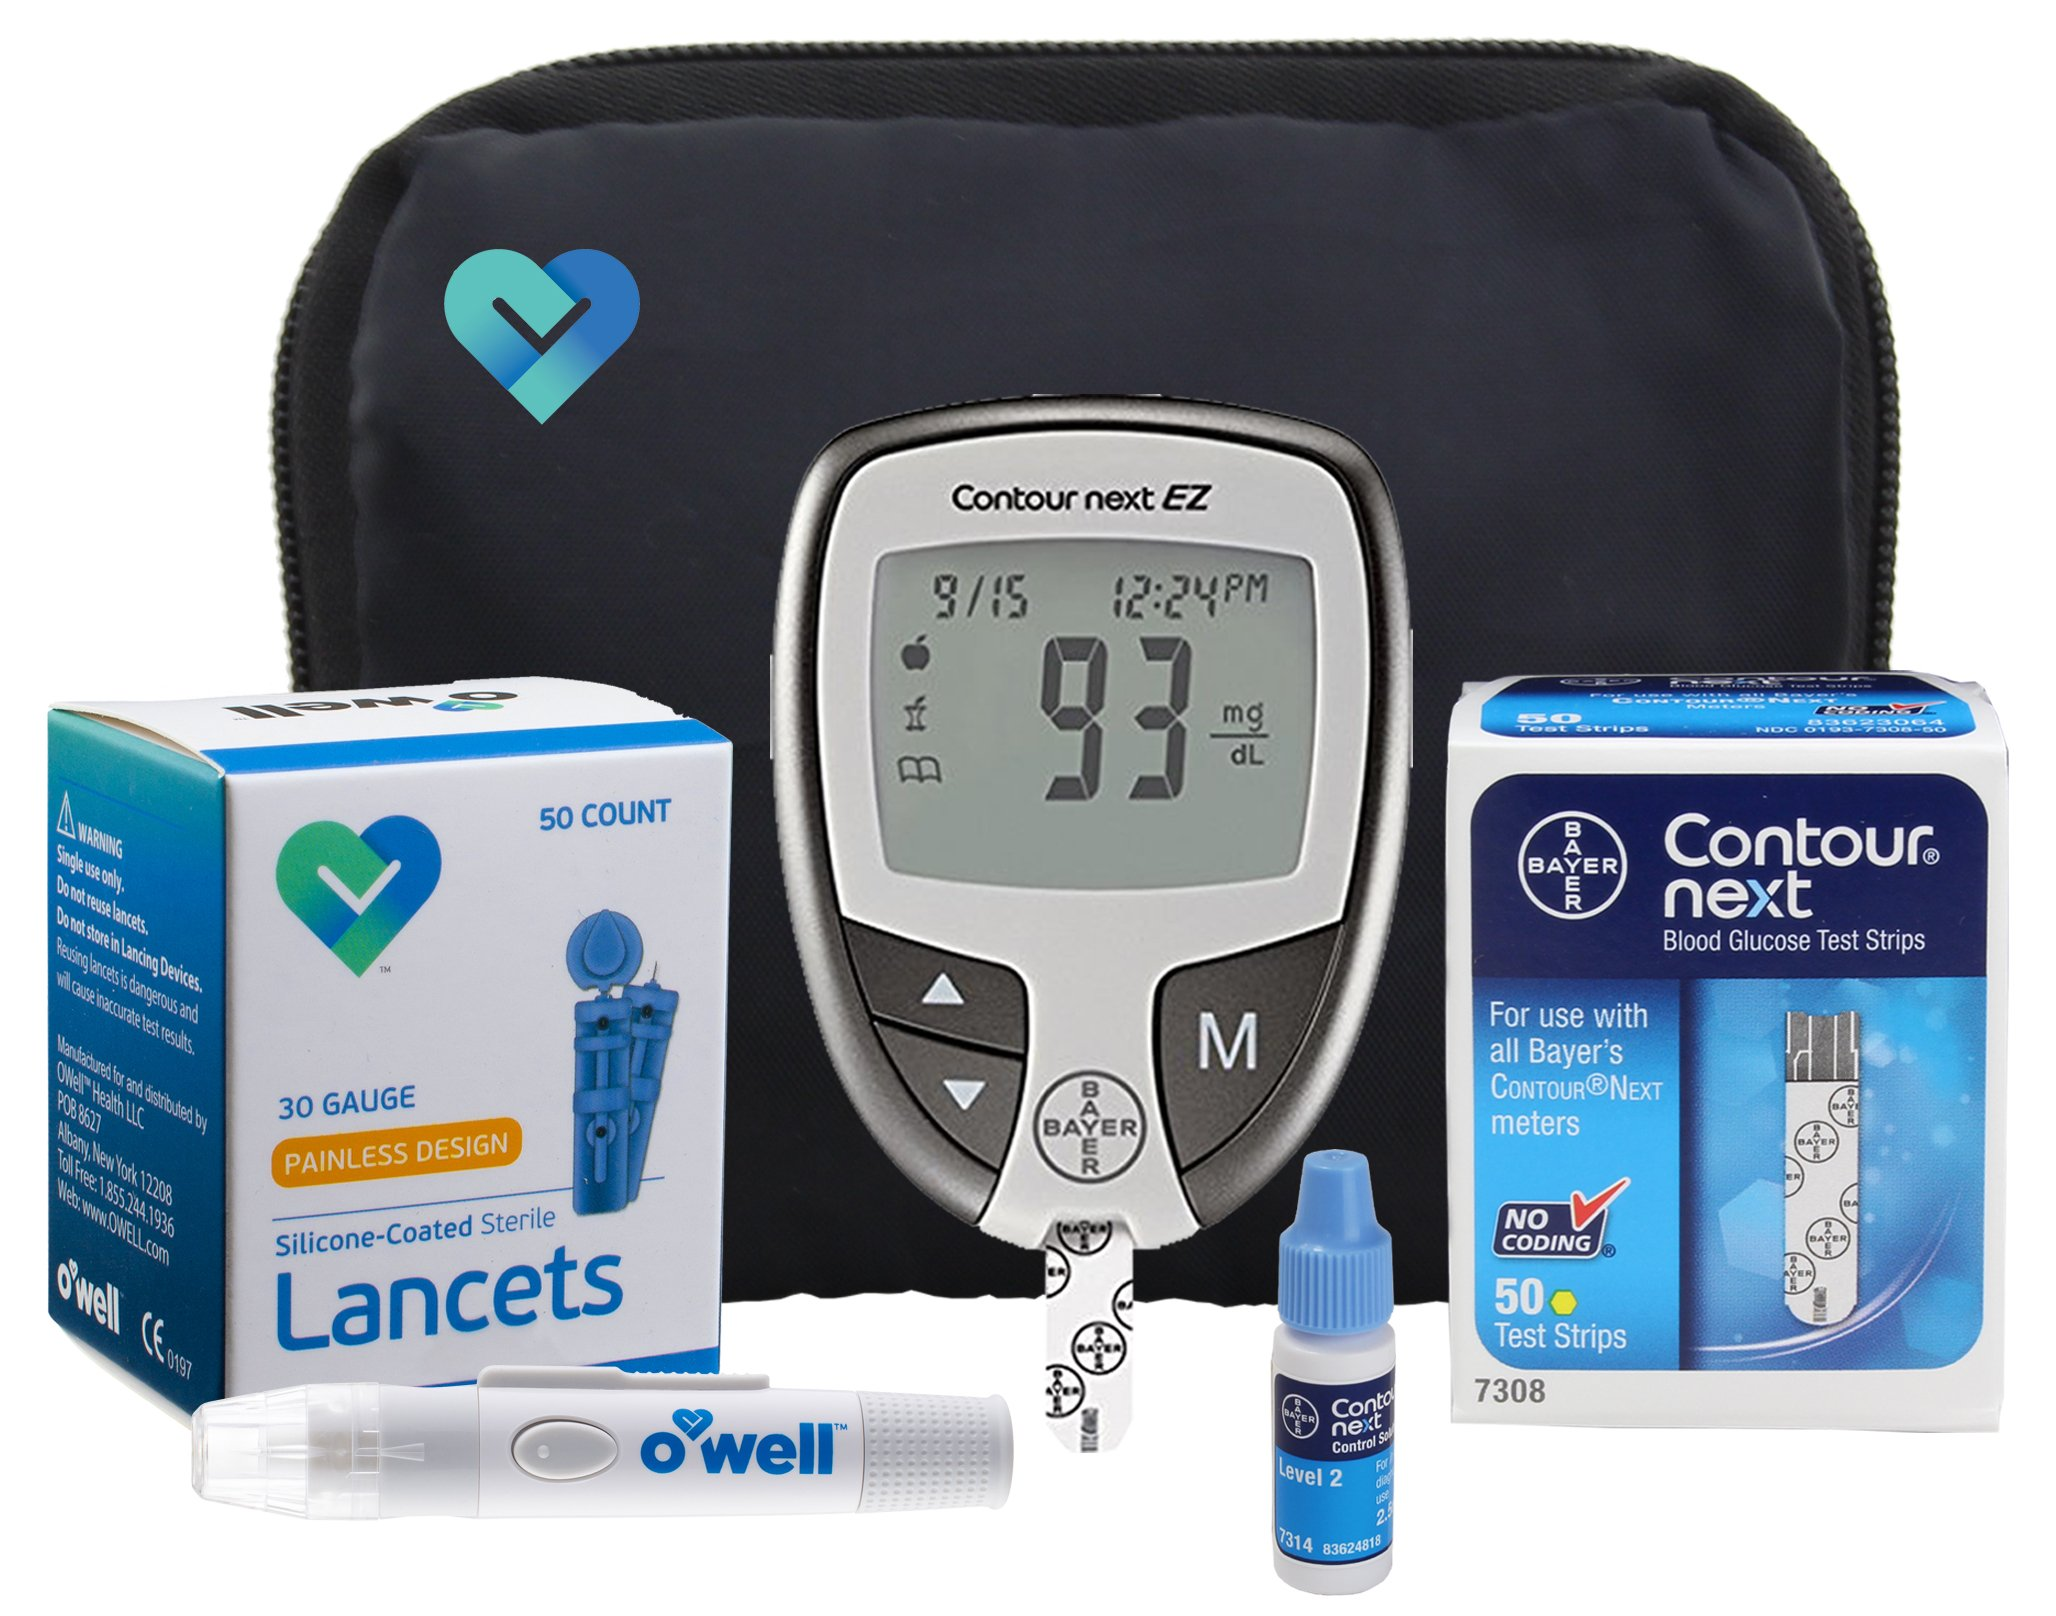 Contour NEXT Blood Sugar Testing Kit, 50 Count | Contour NEXT EZ Meter, 50 Contour NEXT Blood Glucose Test Strips, 50 Lancets, Lancing Device, Control Solution, Manual's, Log Book & Carry Case